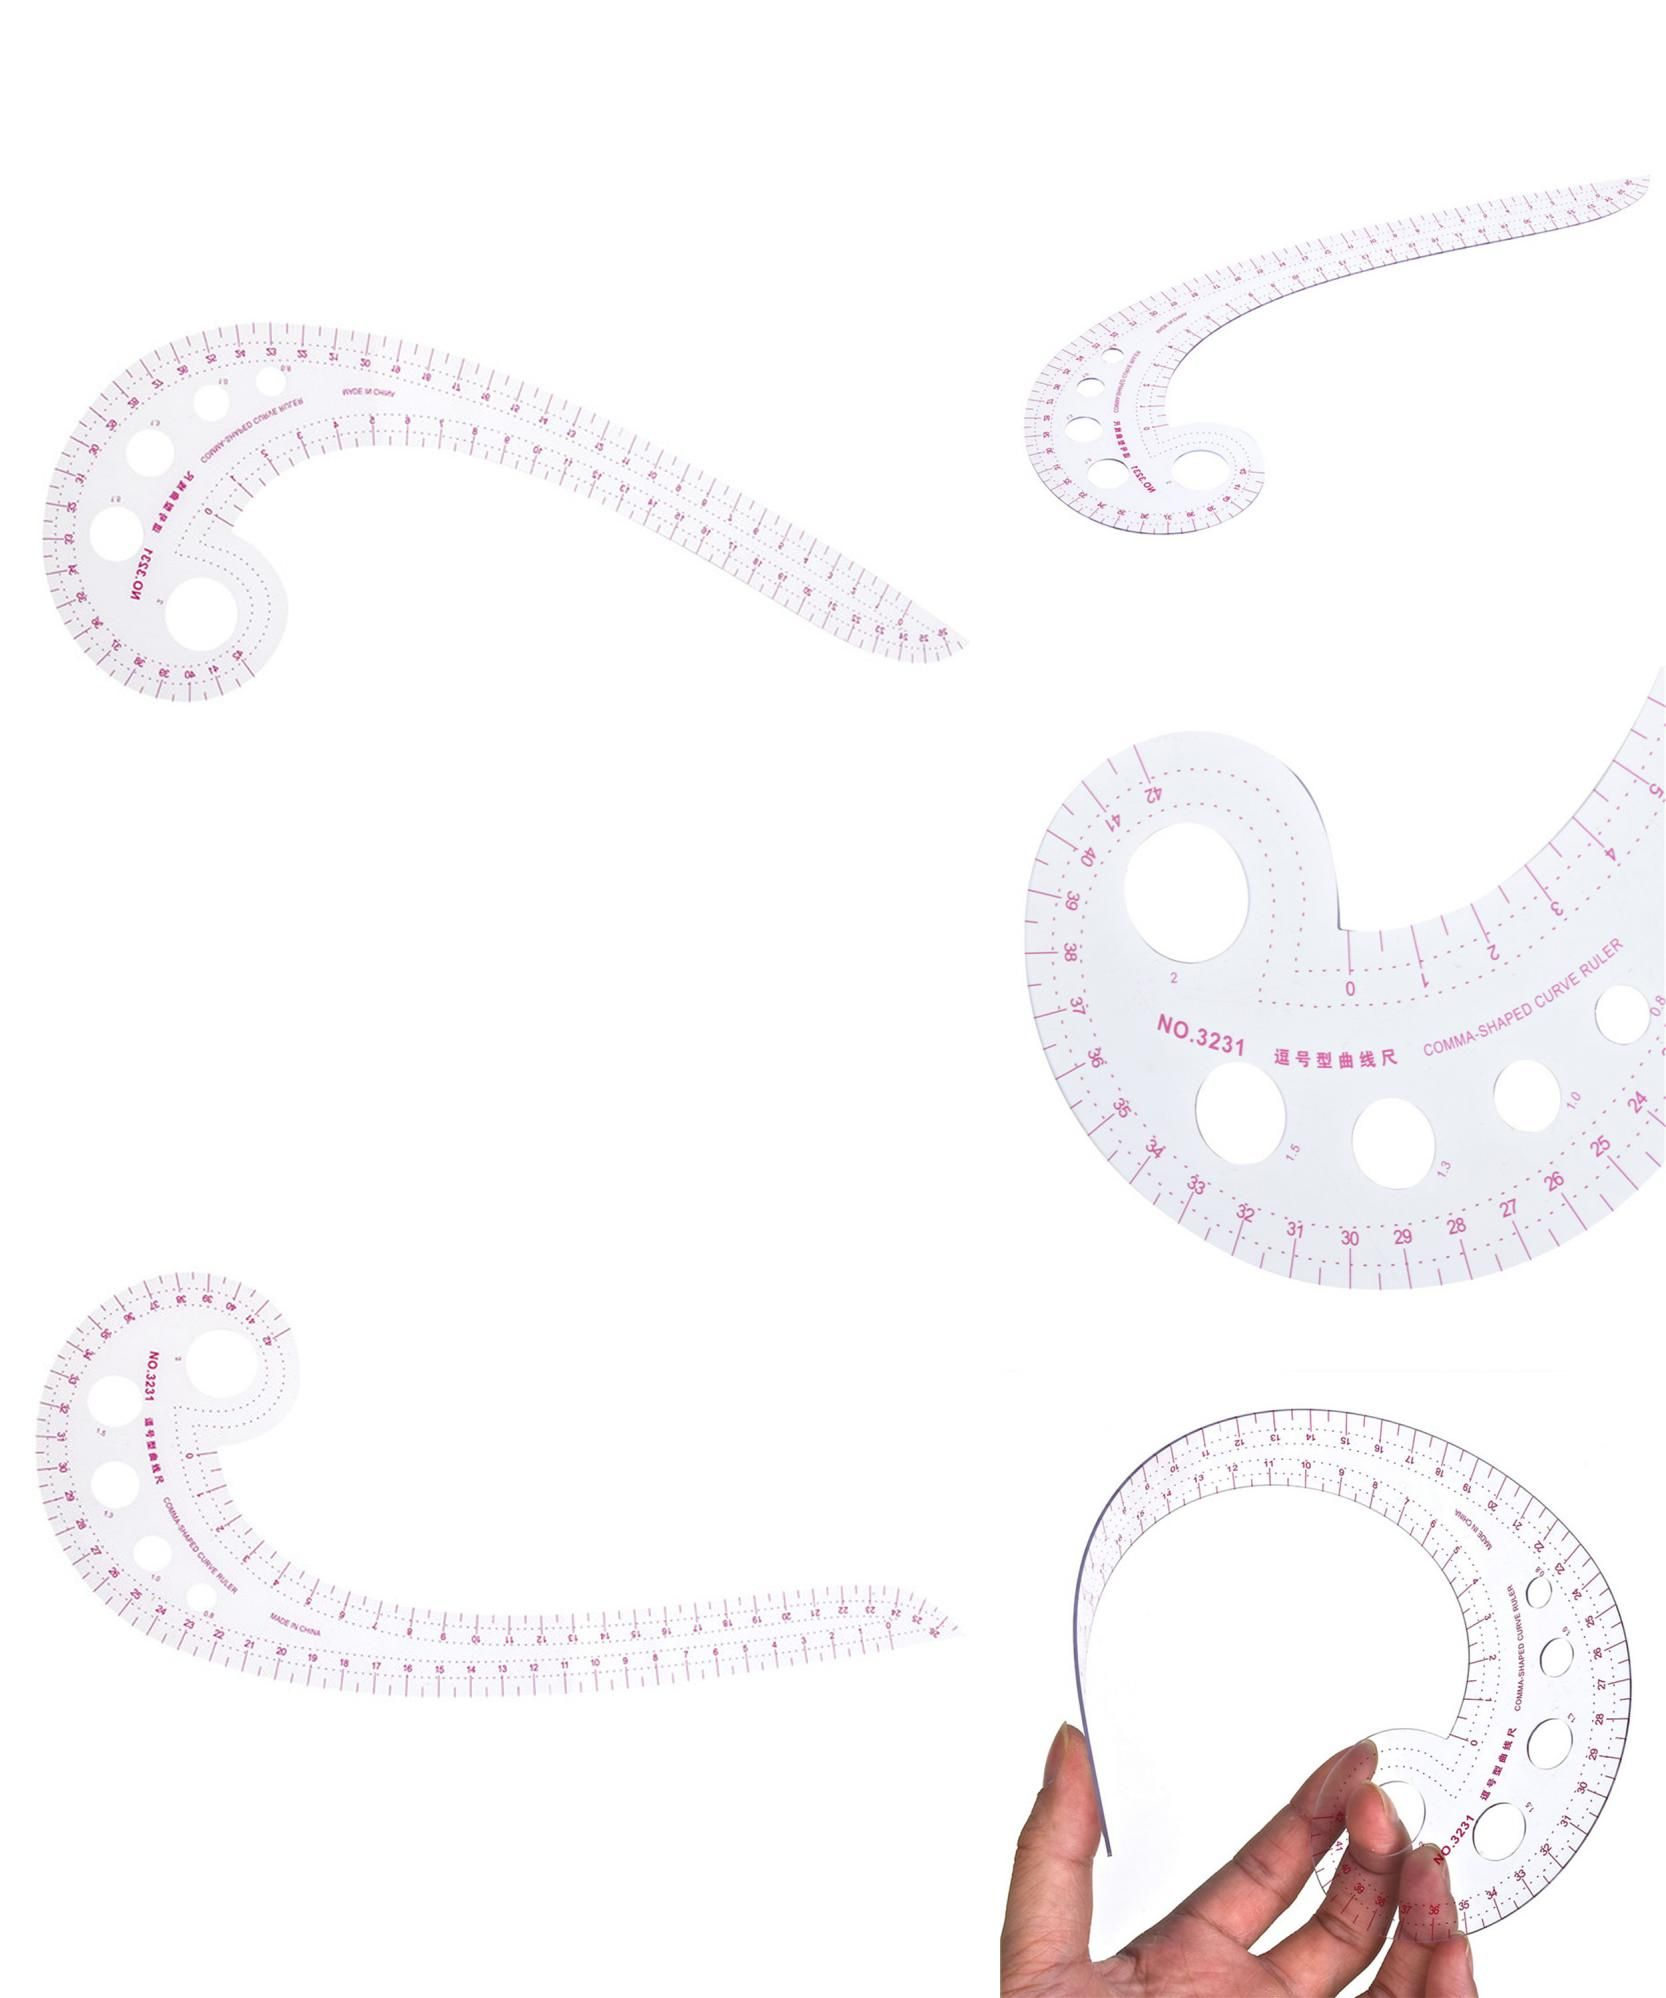 visit to buy transparent comma shaped designers curve ruler for dressmaking tailor support tools and easy sewing pattern ruler advertisement [ 1666 x 1998 Pixel ]